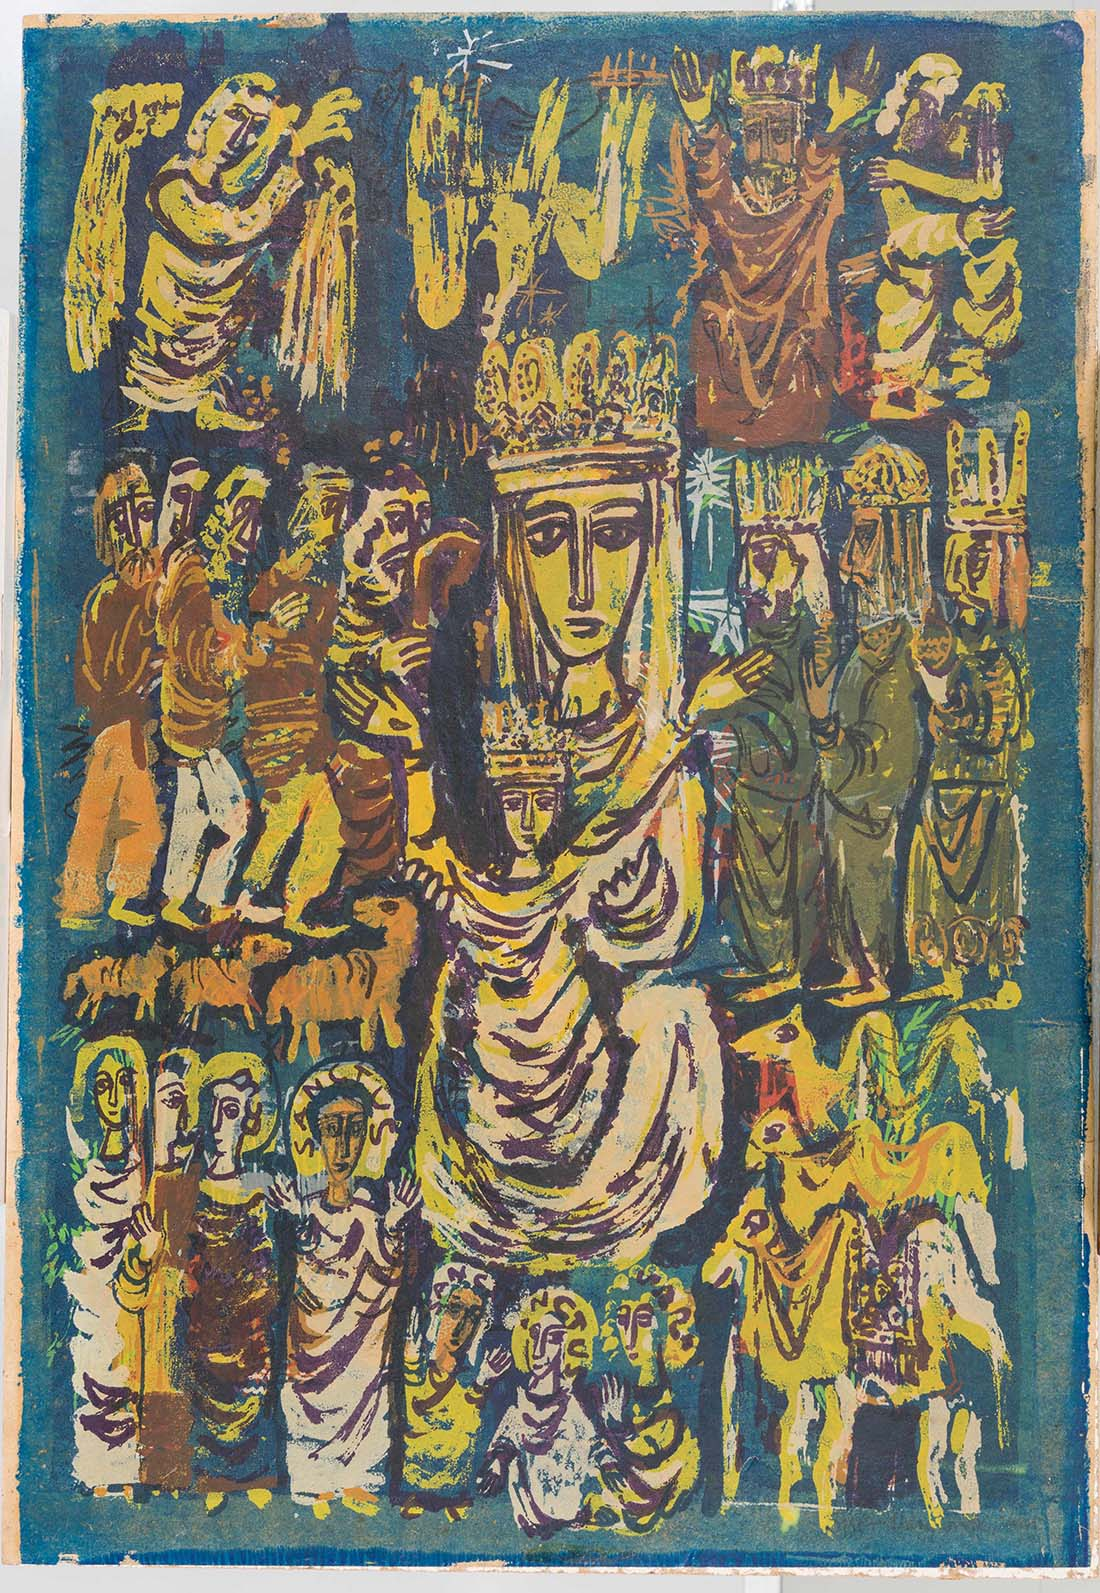 the lord is with thee, 1952 | Collection UCLA Grunwald Center for the Graphic Arts, Hammer Museum. Corita Kent Bequest.